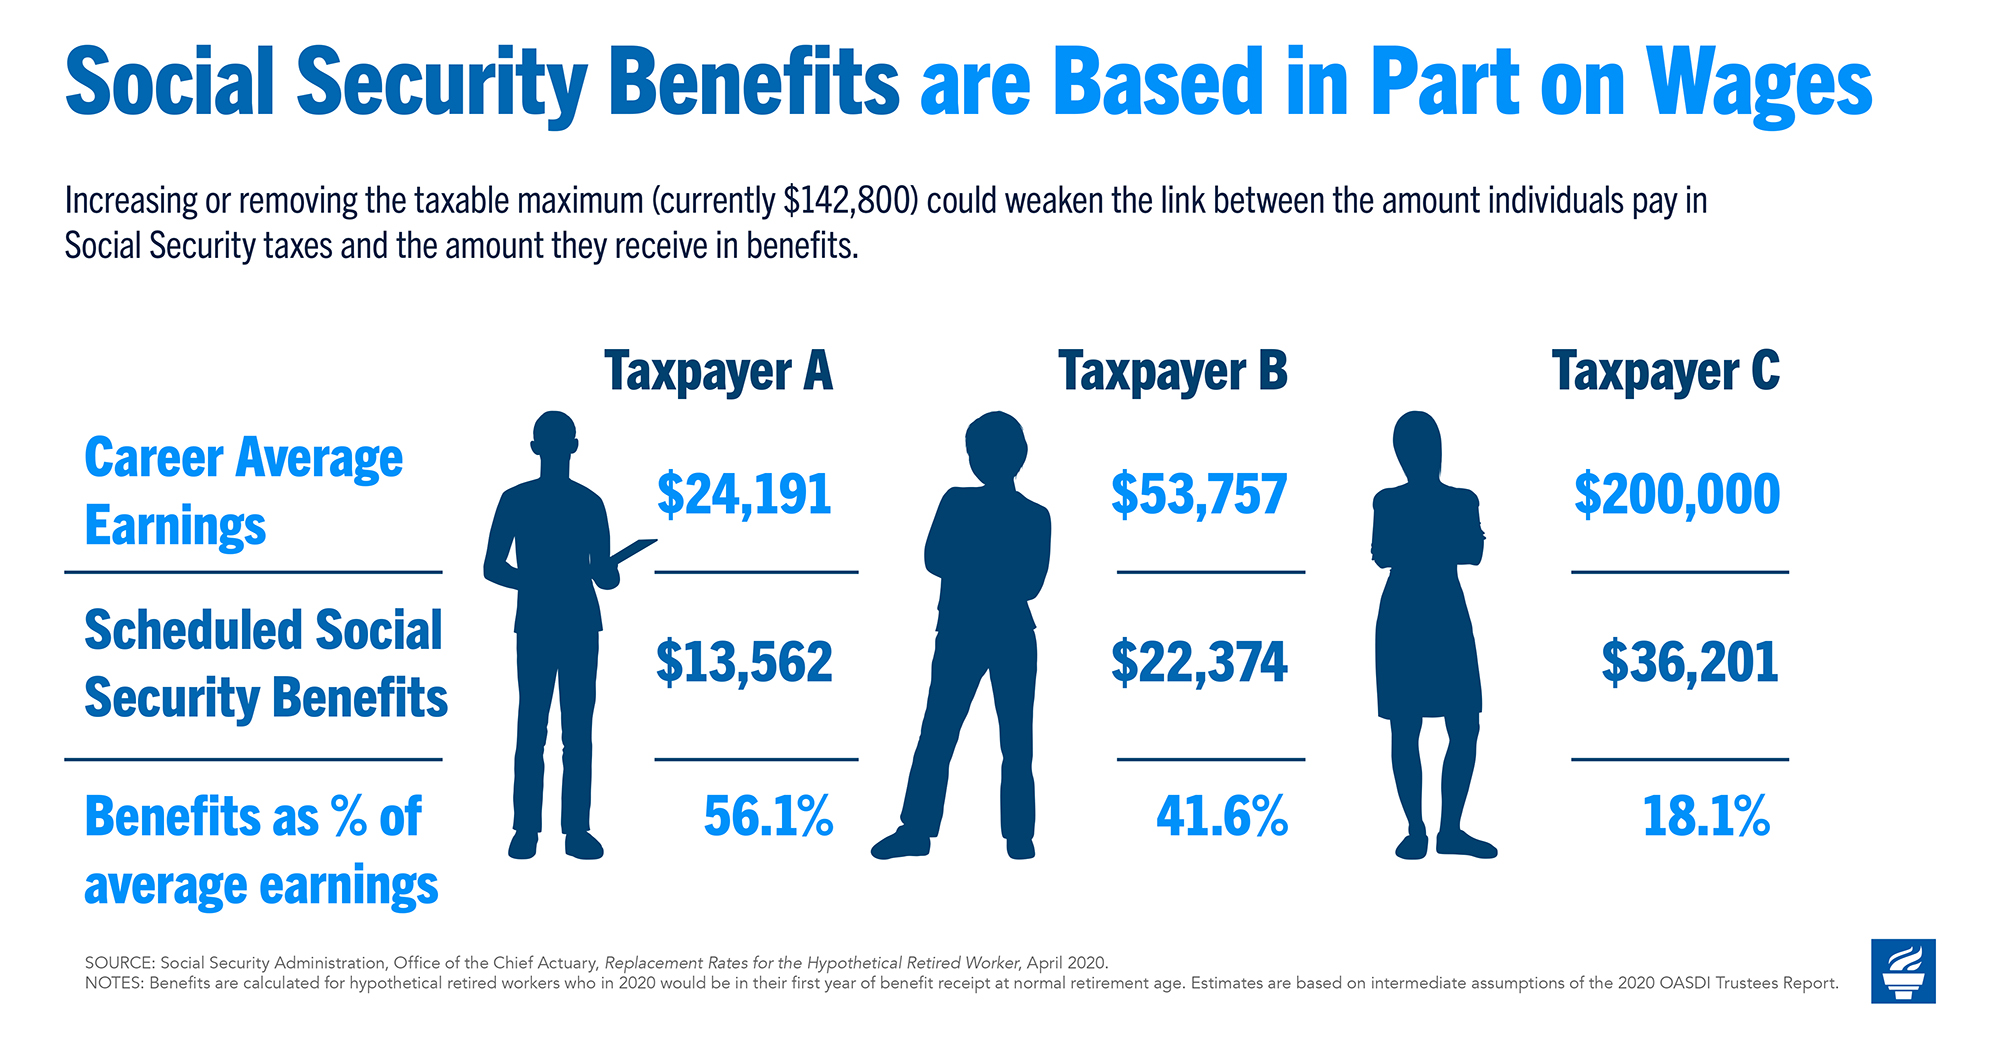 Social Security Benefits are Based in Part on Wages